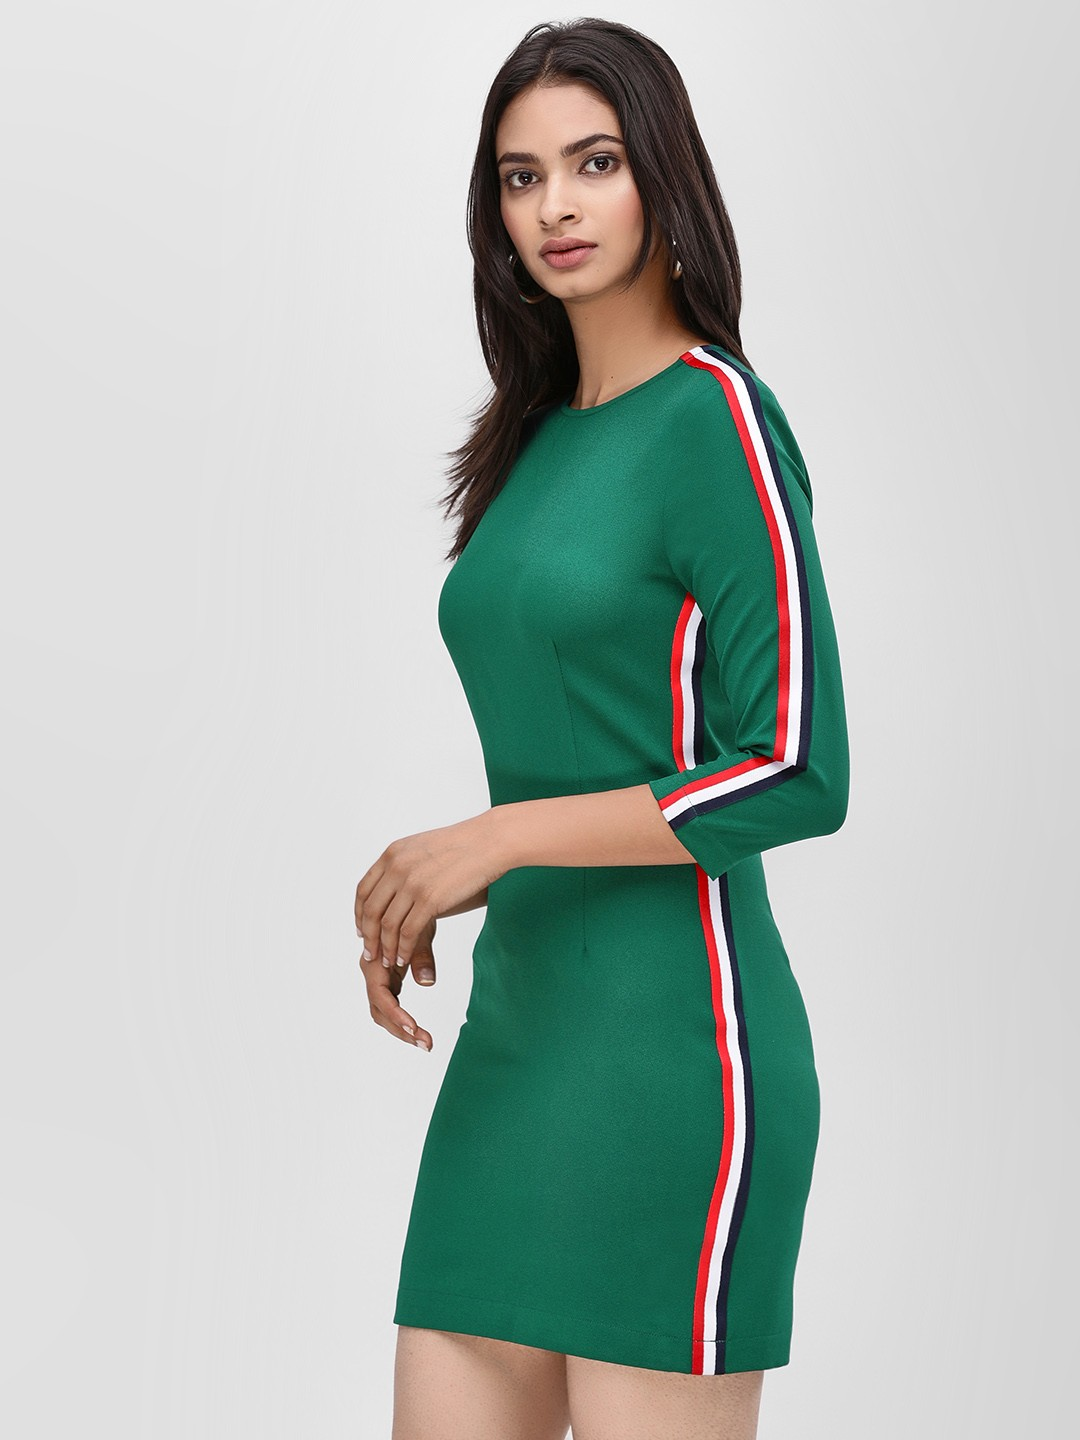 Ri-Dress Green Bodycon Dress With Side Contrast 1